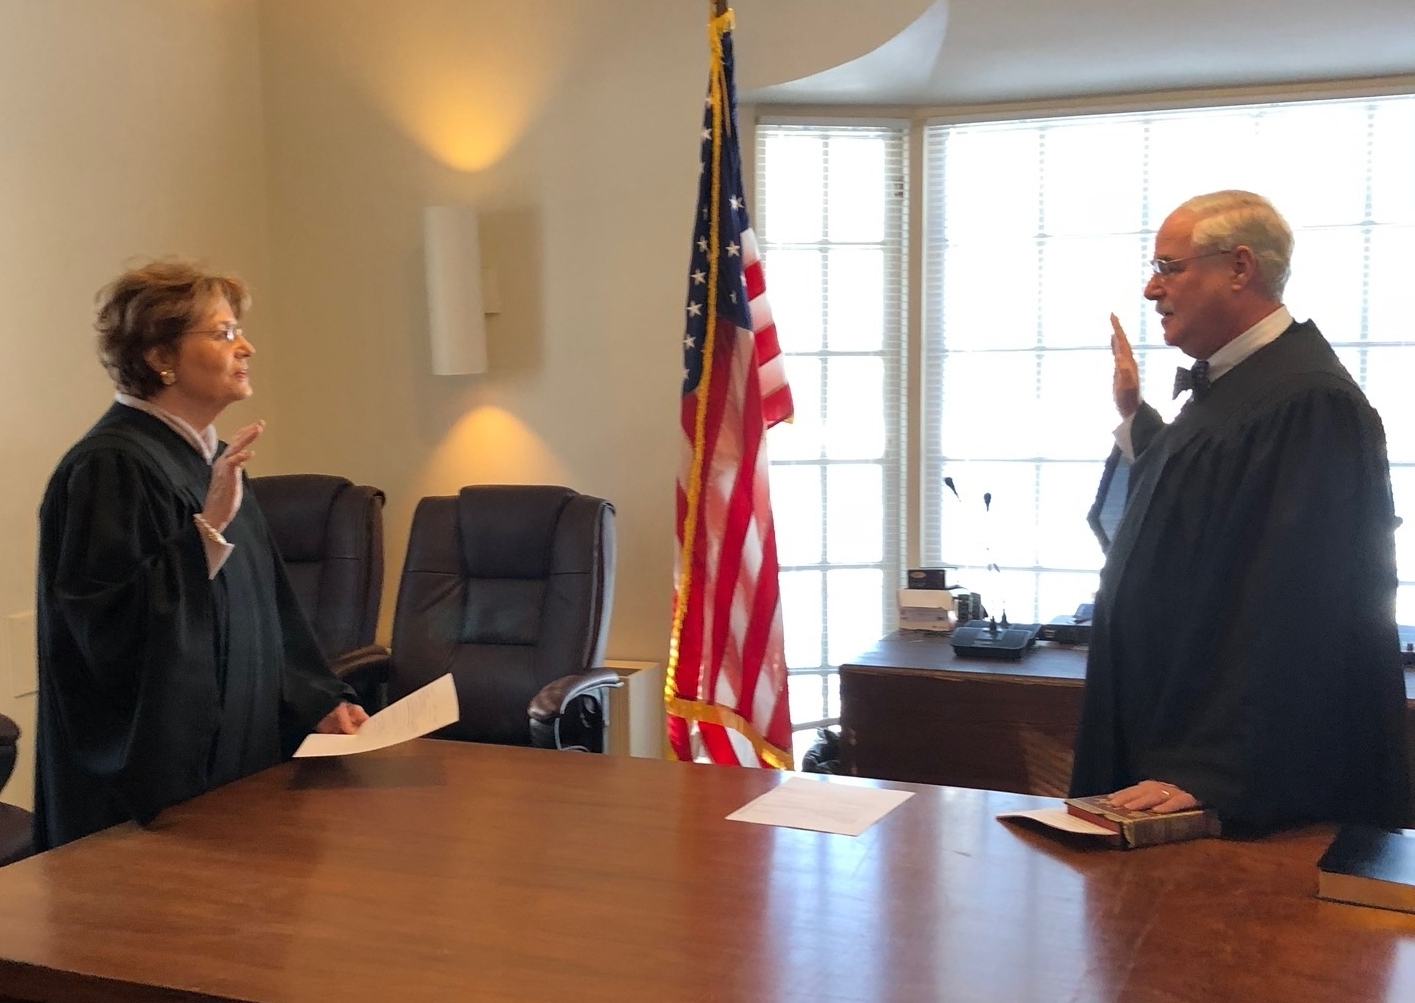 Town Justice Regina Kelly swears in reelected incumbent Town Justice Ira Clair.